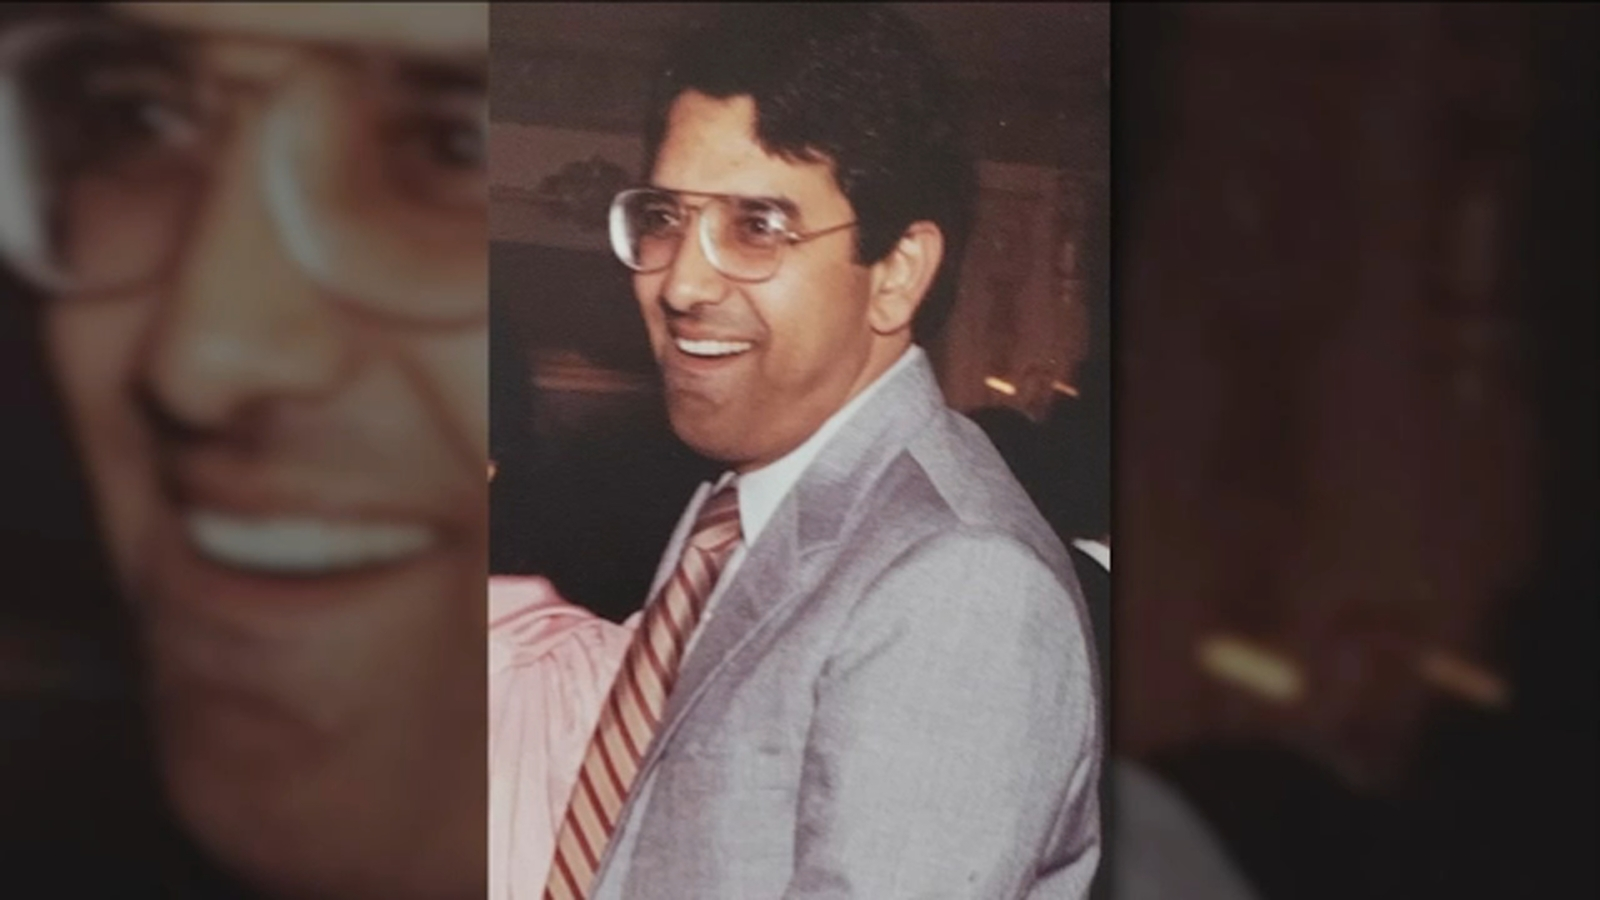 Rutgers professor, doctor dies of COVID while helping family in India